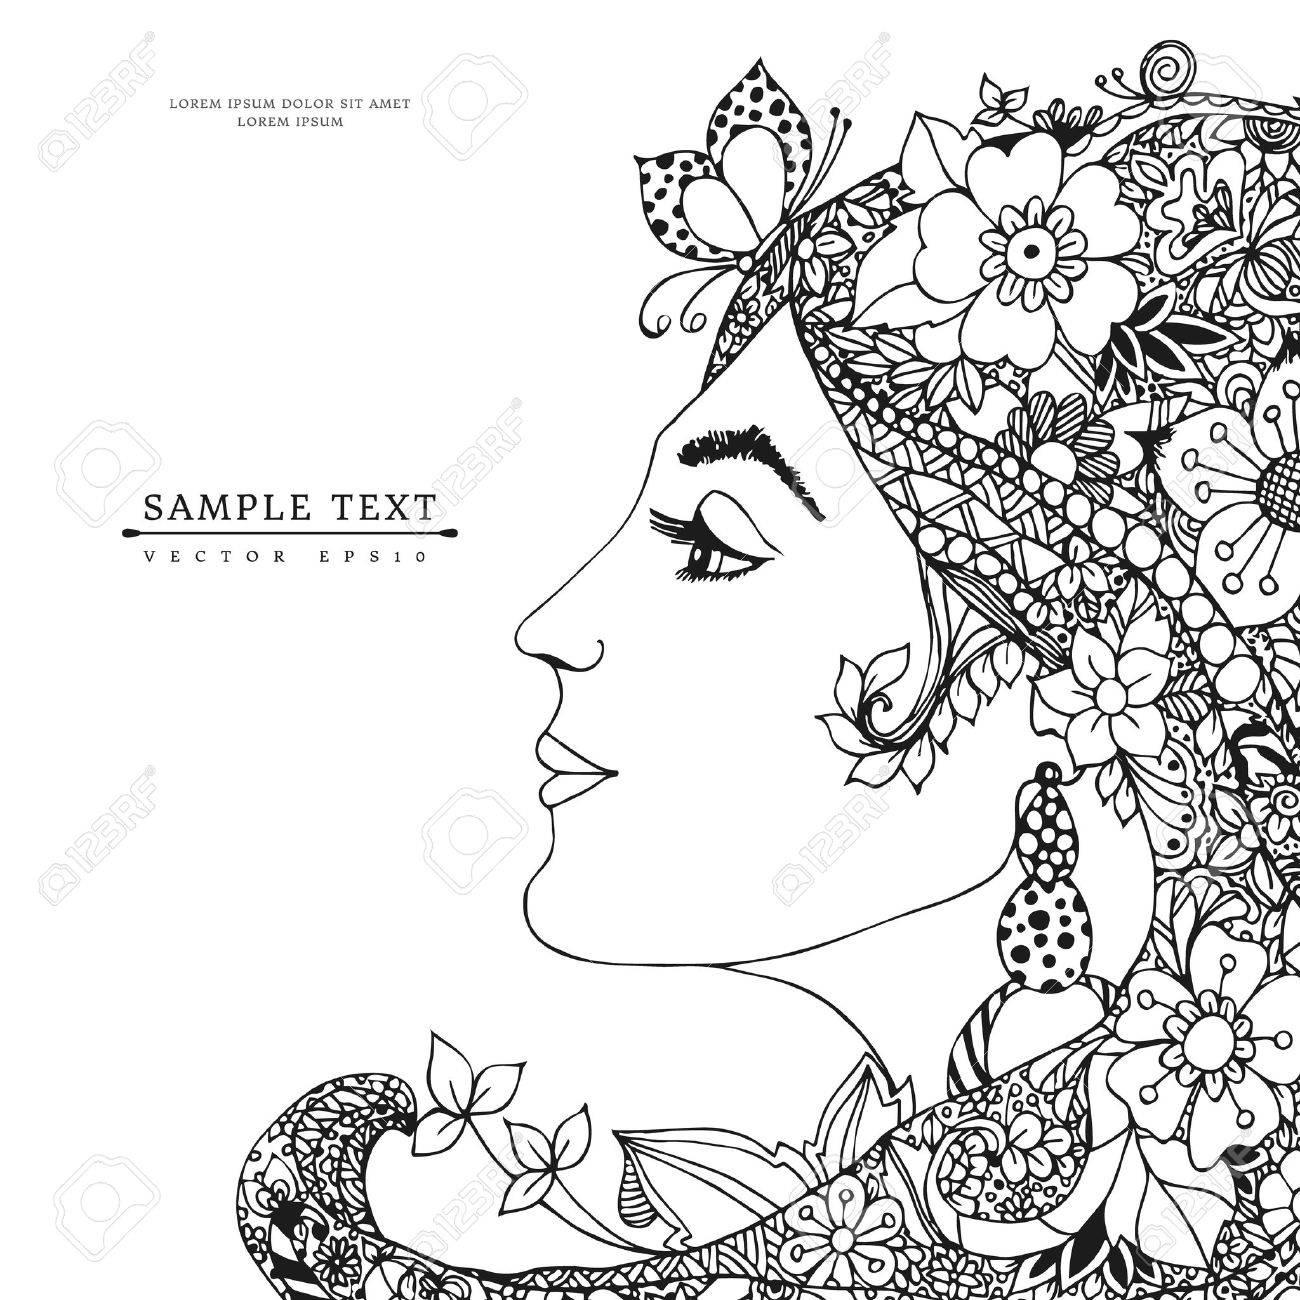 1300x1300 Vector Illustration Card Of The Profile Of A Girl With Flowers